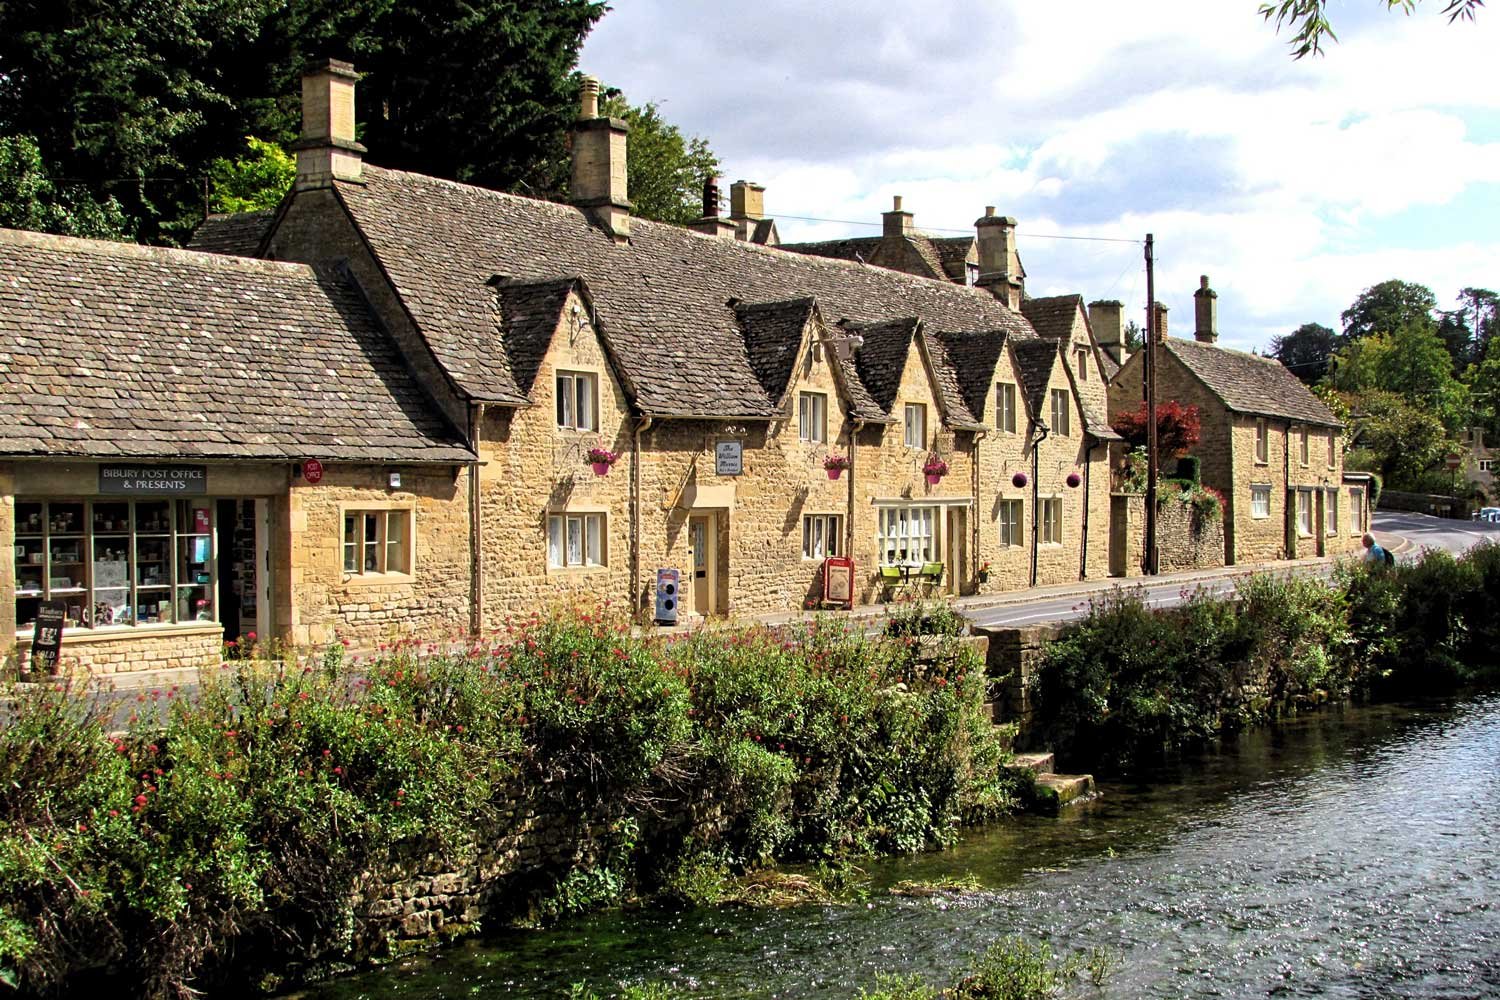 Picturesque thatched houses along the river in the Cotswolds, England